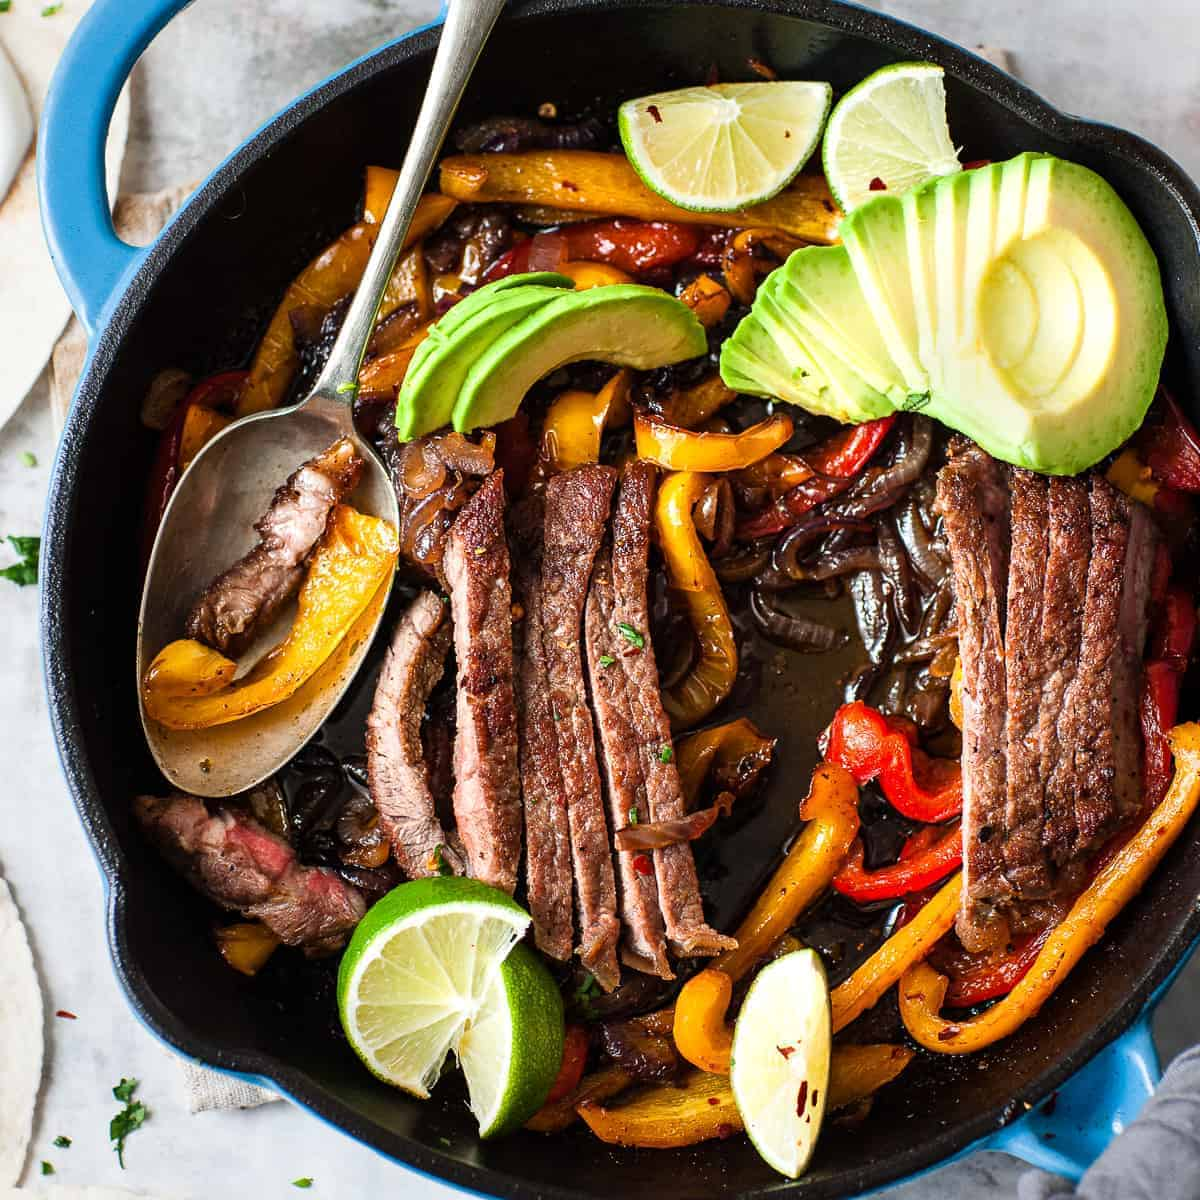 Seared steak fajitas in a skillet made using Aldi ingredients.